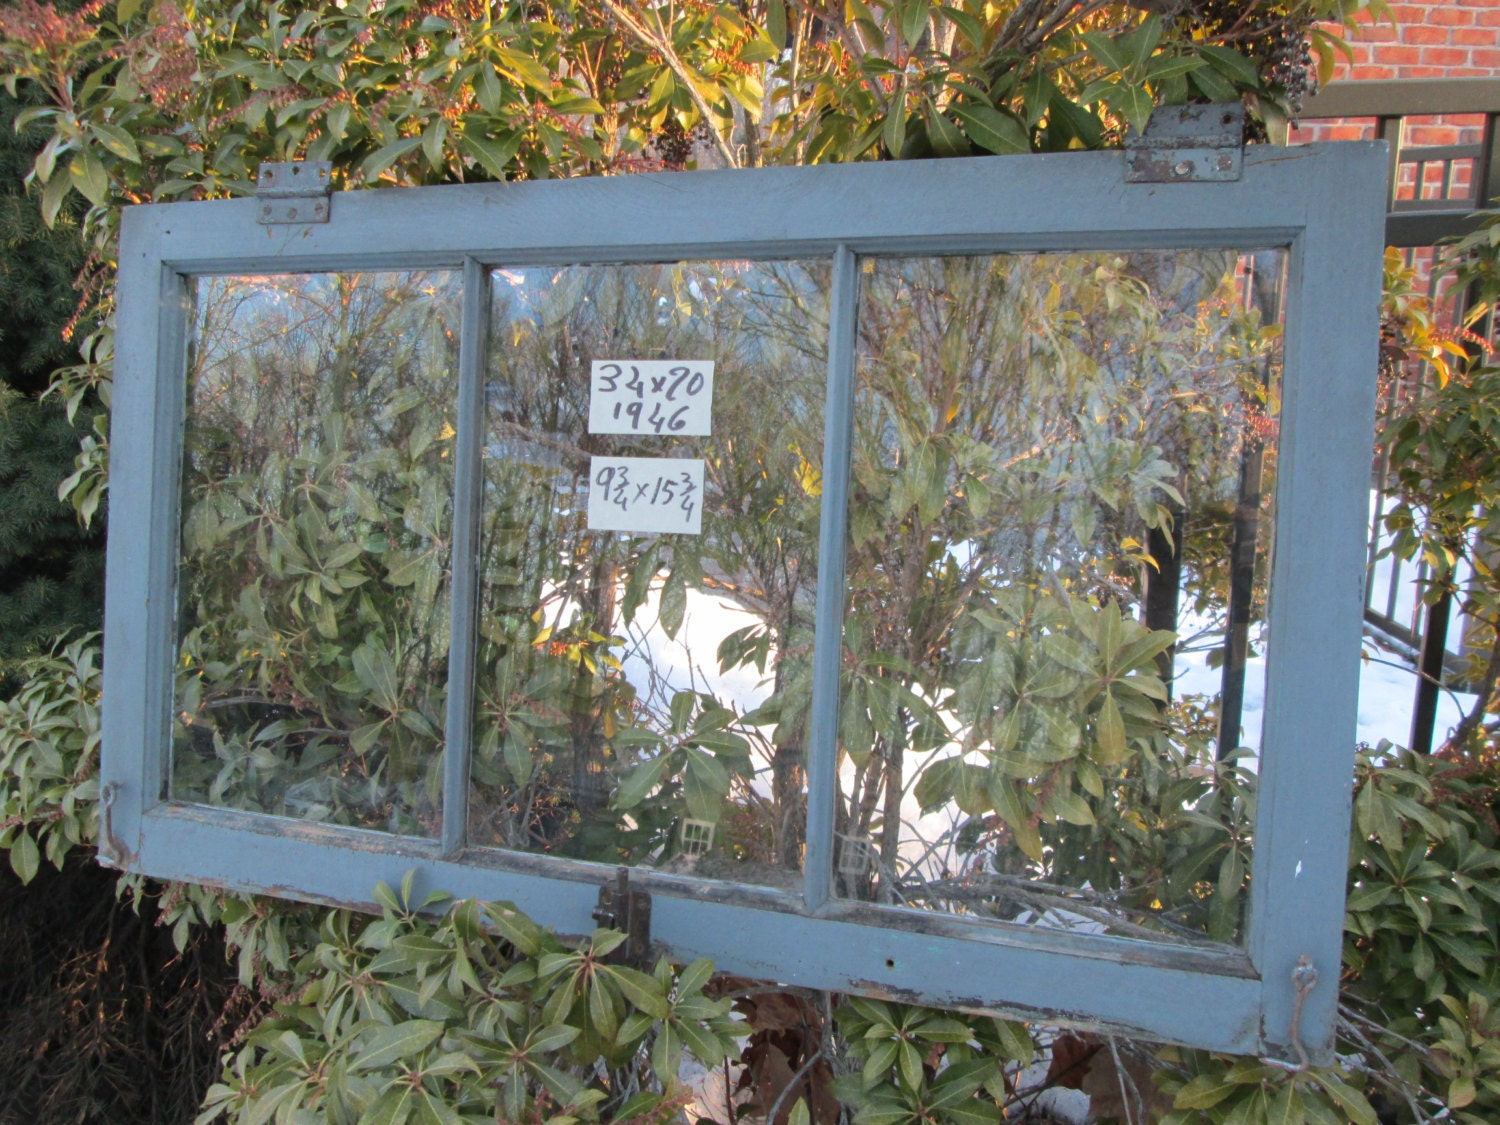 Vintage basement window sash old 3 pane 34 x 20 from 1946 for 2 pane window